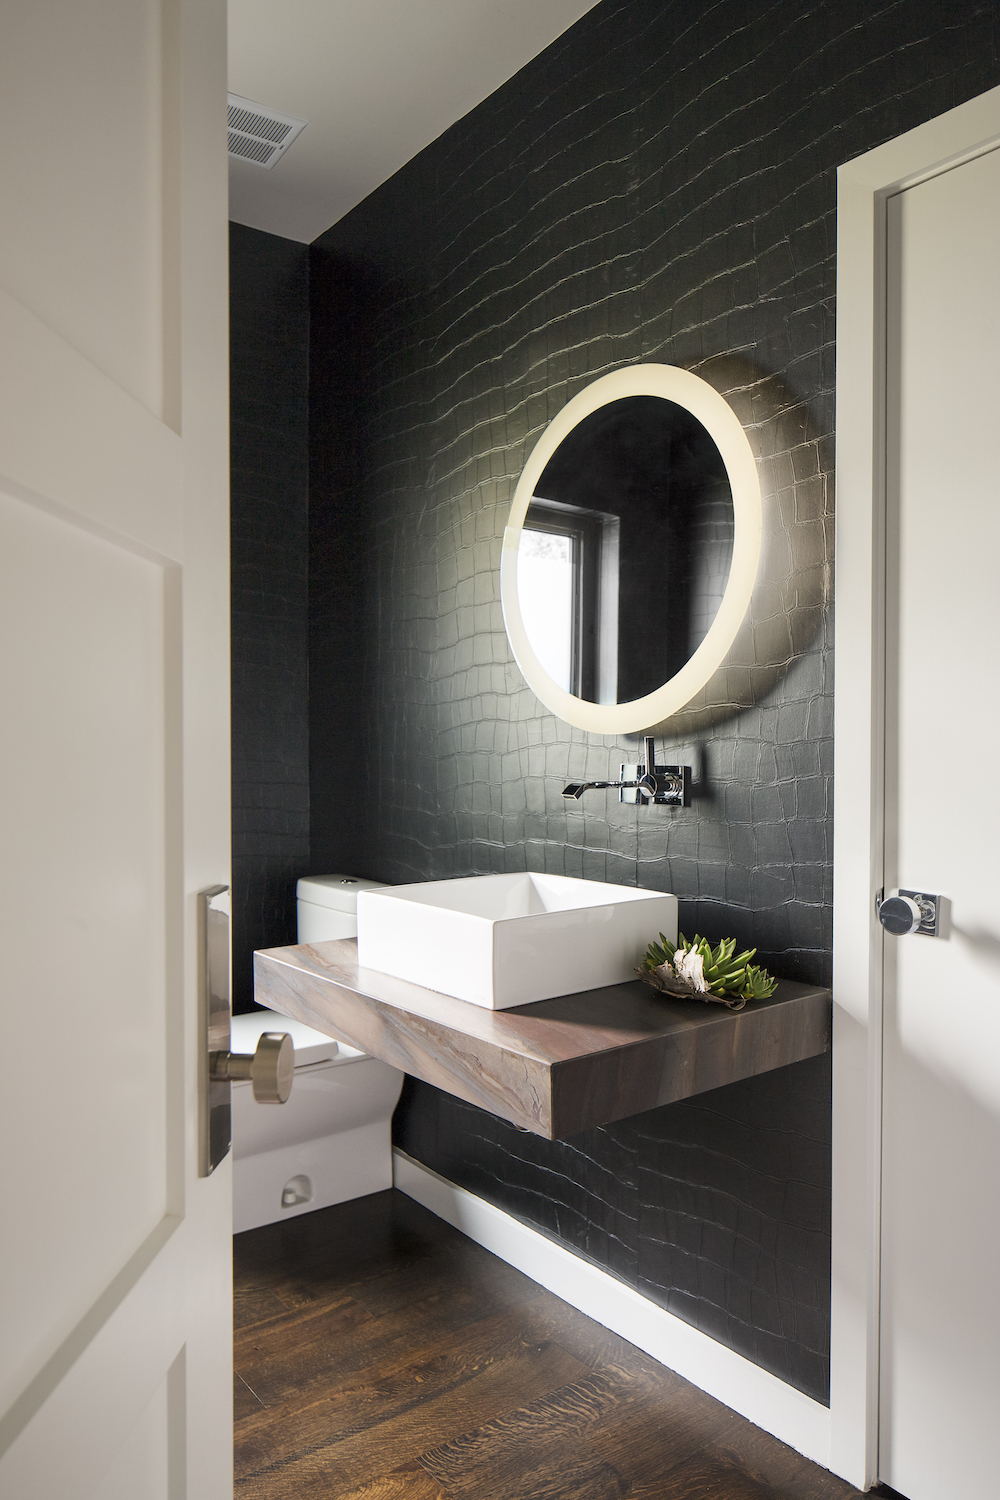 Contemporary powder bathroom interior design with circular mirror, crocodile inspired dark wallcovering and modern fixtures.